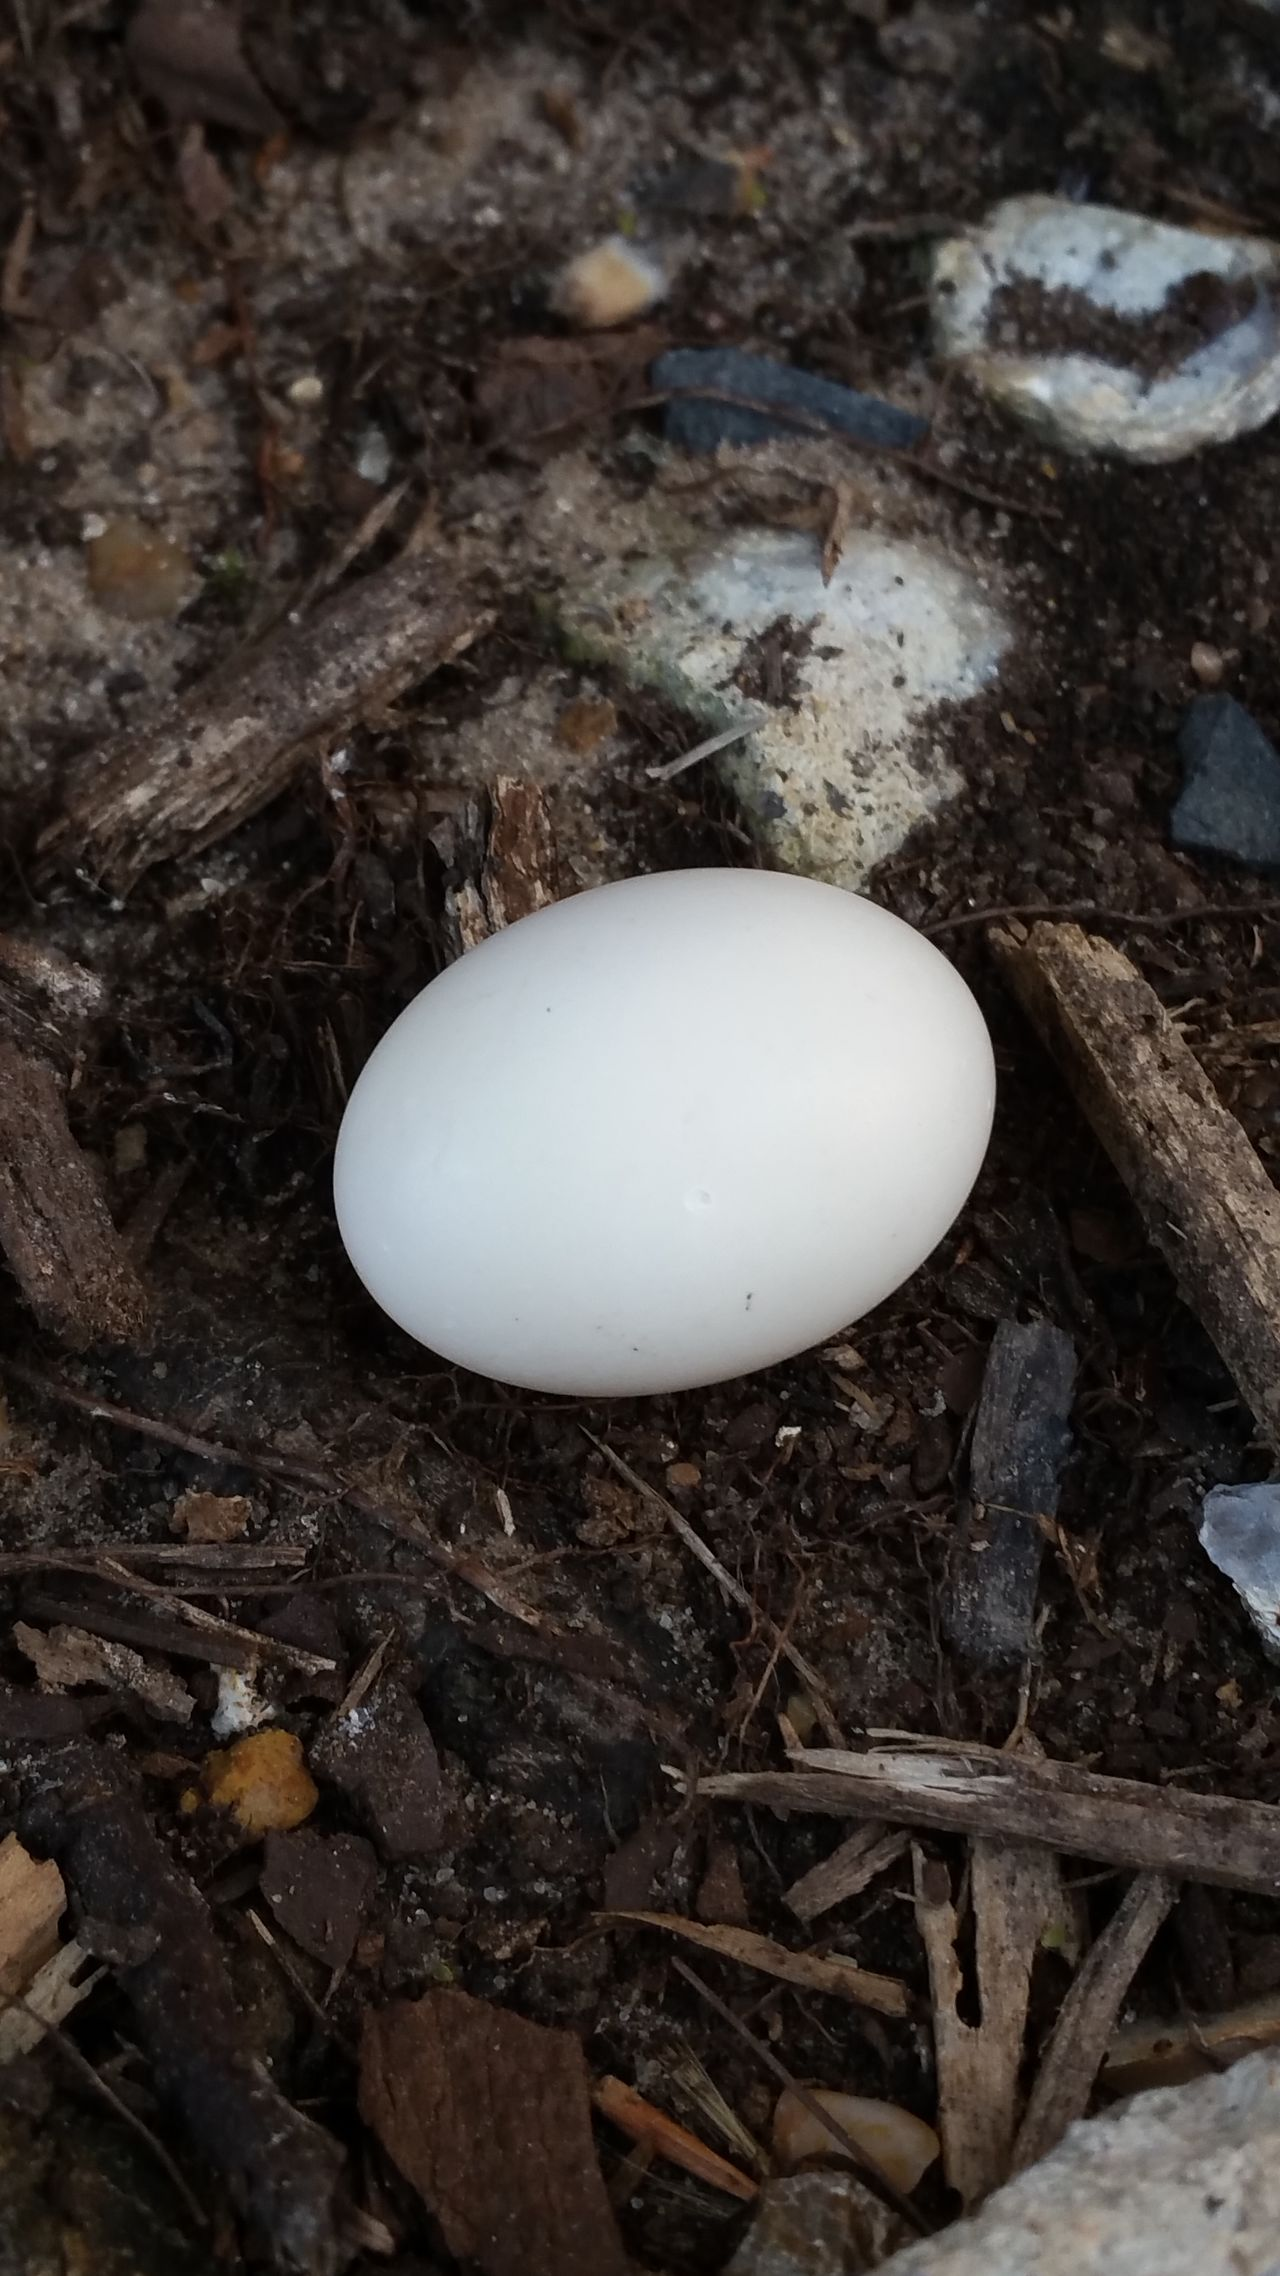 Found a lost dove egg on the ground. No sign of a nest anywhere, just a couple of doves in the tree. High Angle View Close-up No People Nature Day Freshness Outdoors Bird Egg Dove Egg Eggs Lost And Found Unusual Finds